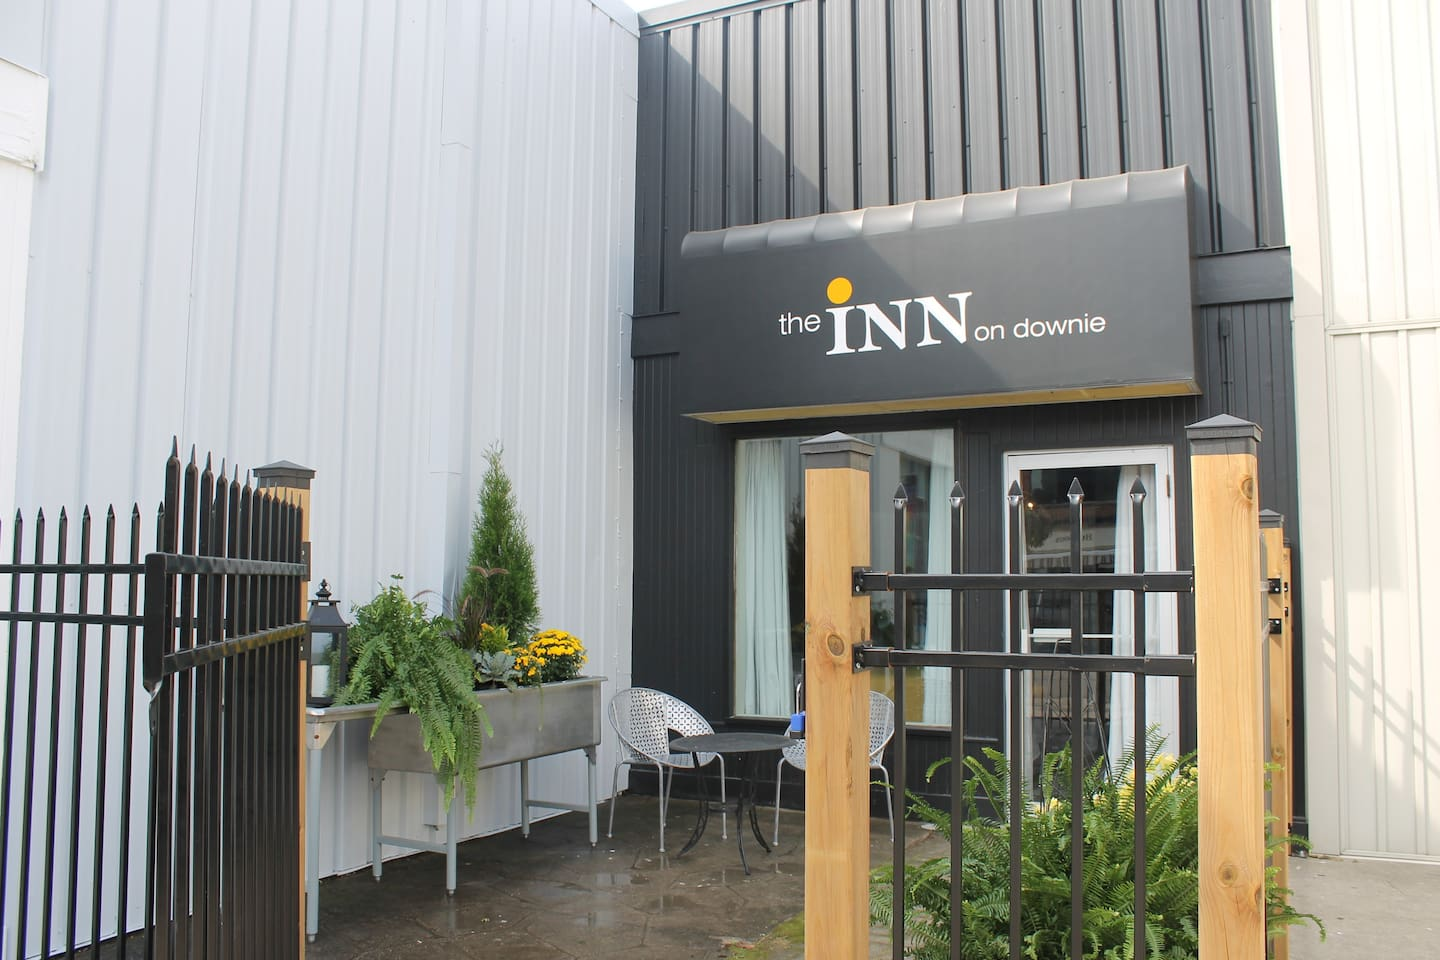 Welcome to The Inn on Downie